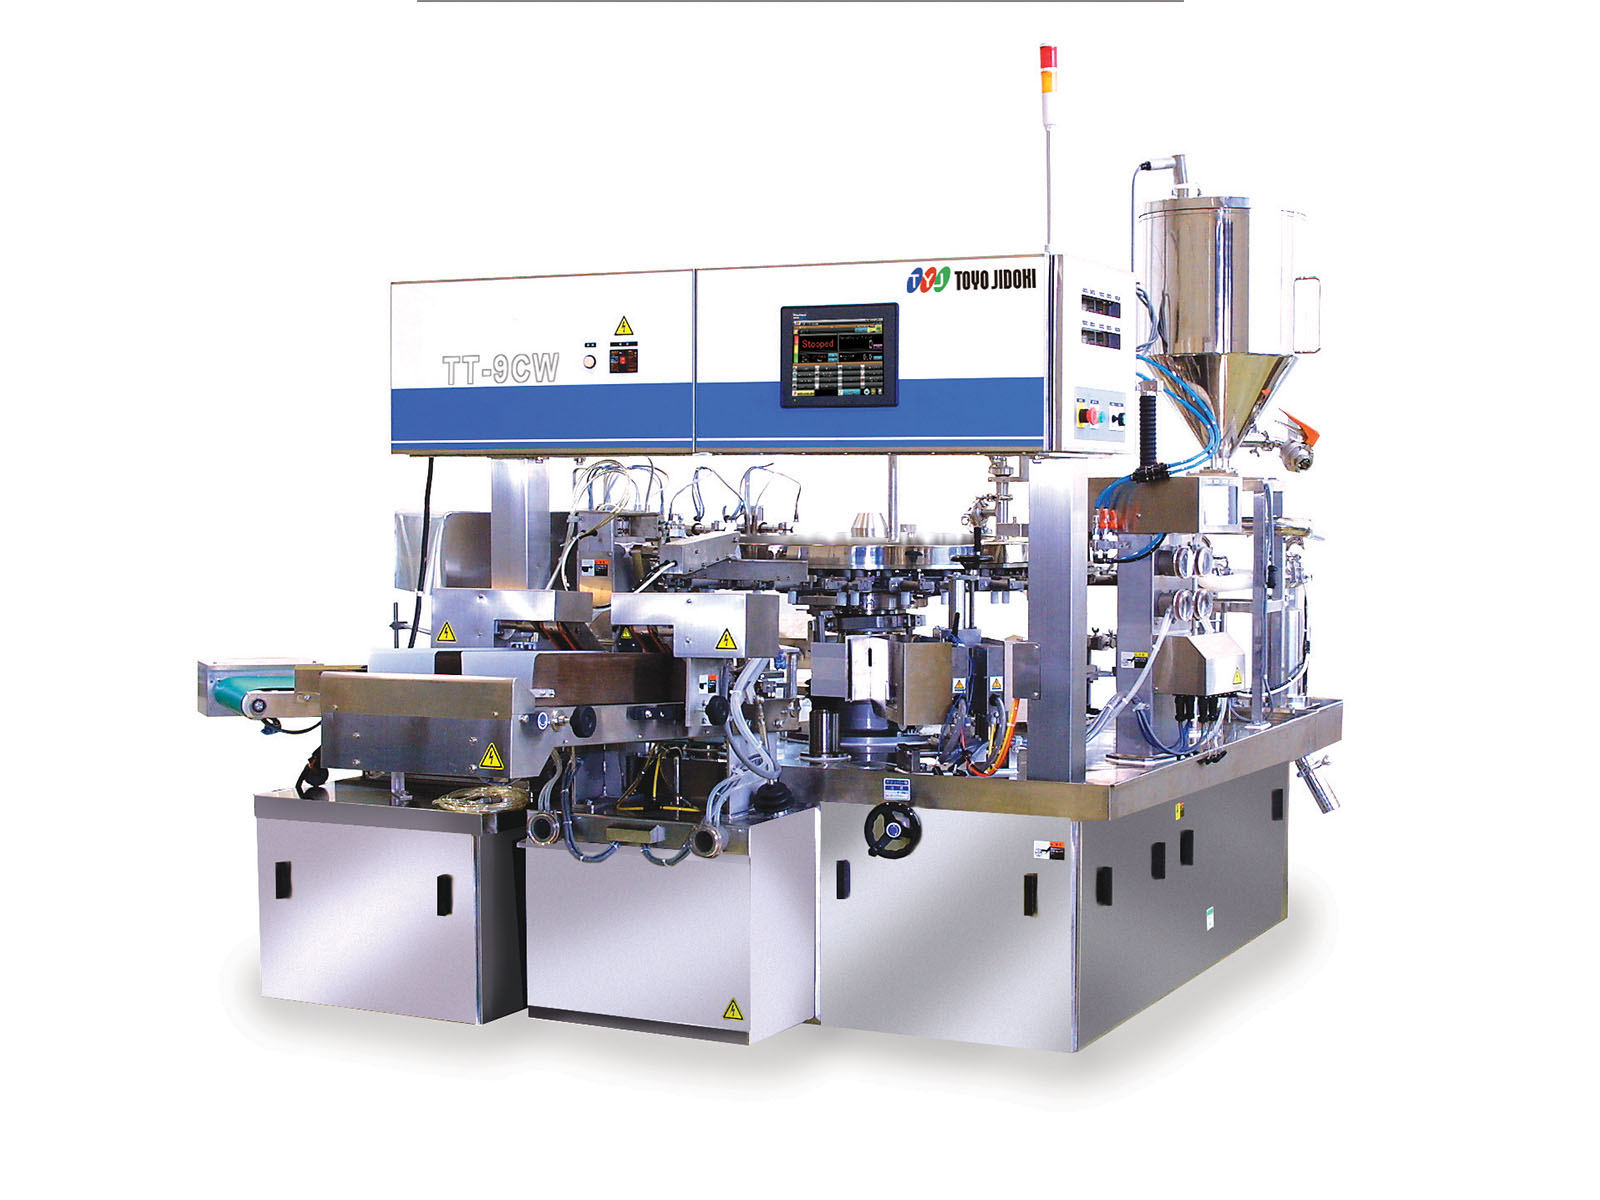 High Speed Pouch Filler Sealer Tt 9 Cw Shadow